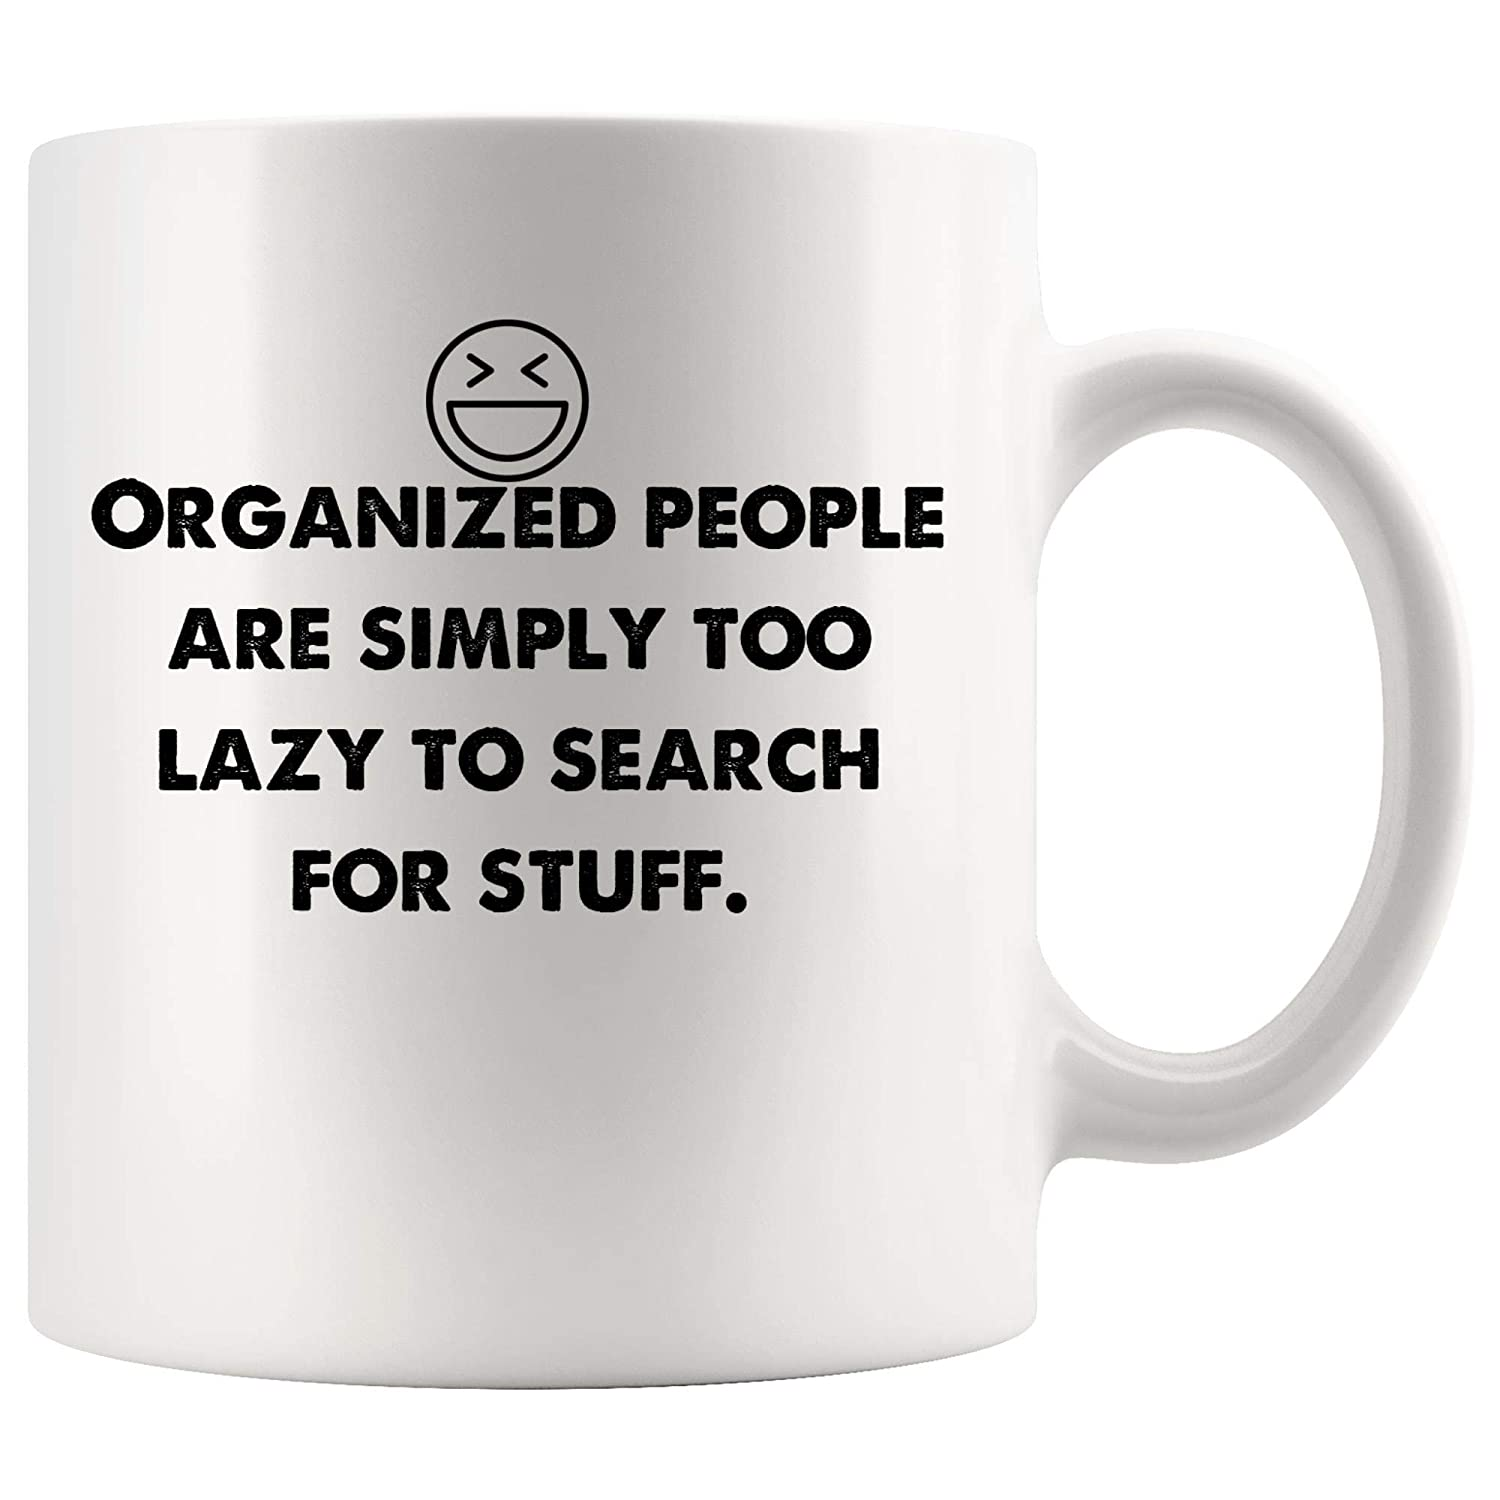 Amazon.com: Organized people are simply lazy search stuff ...